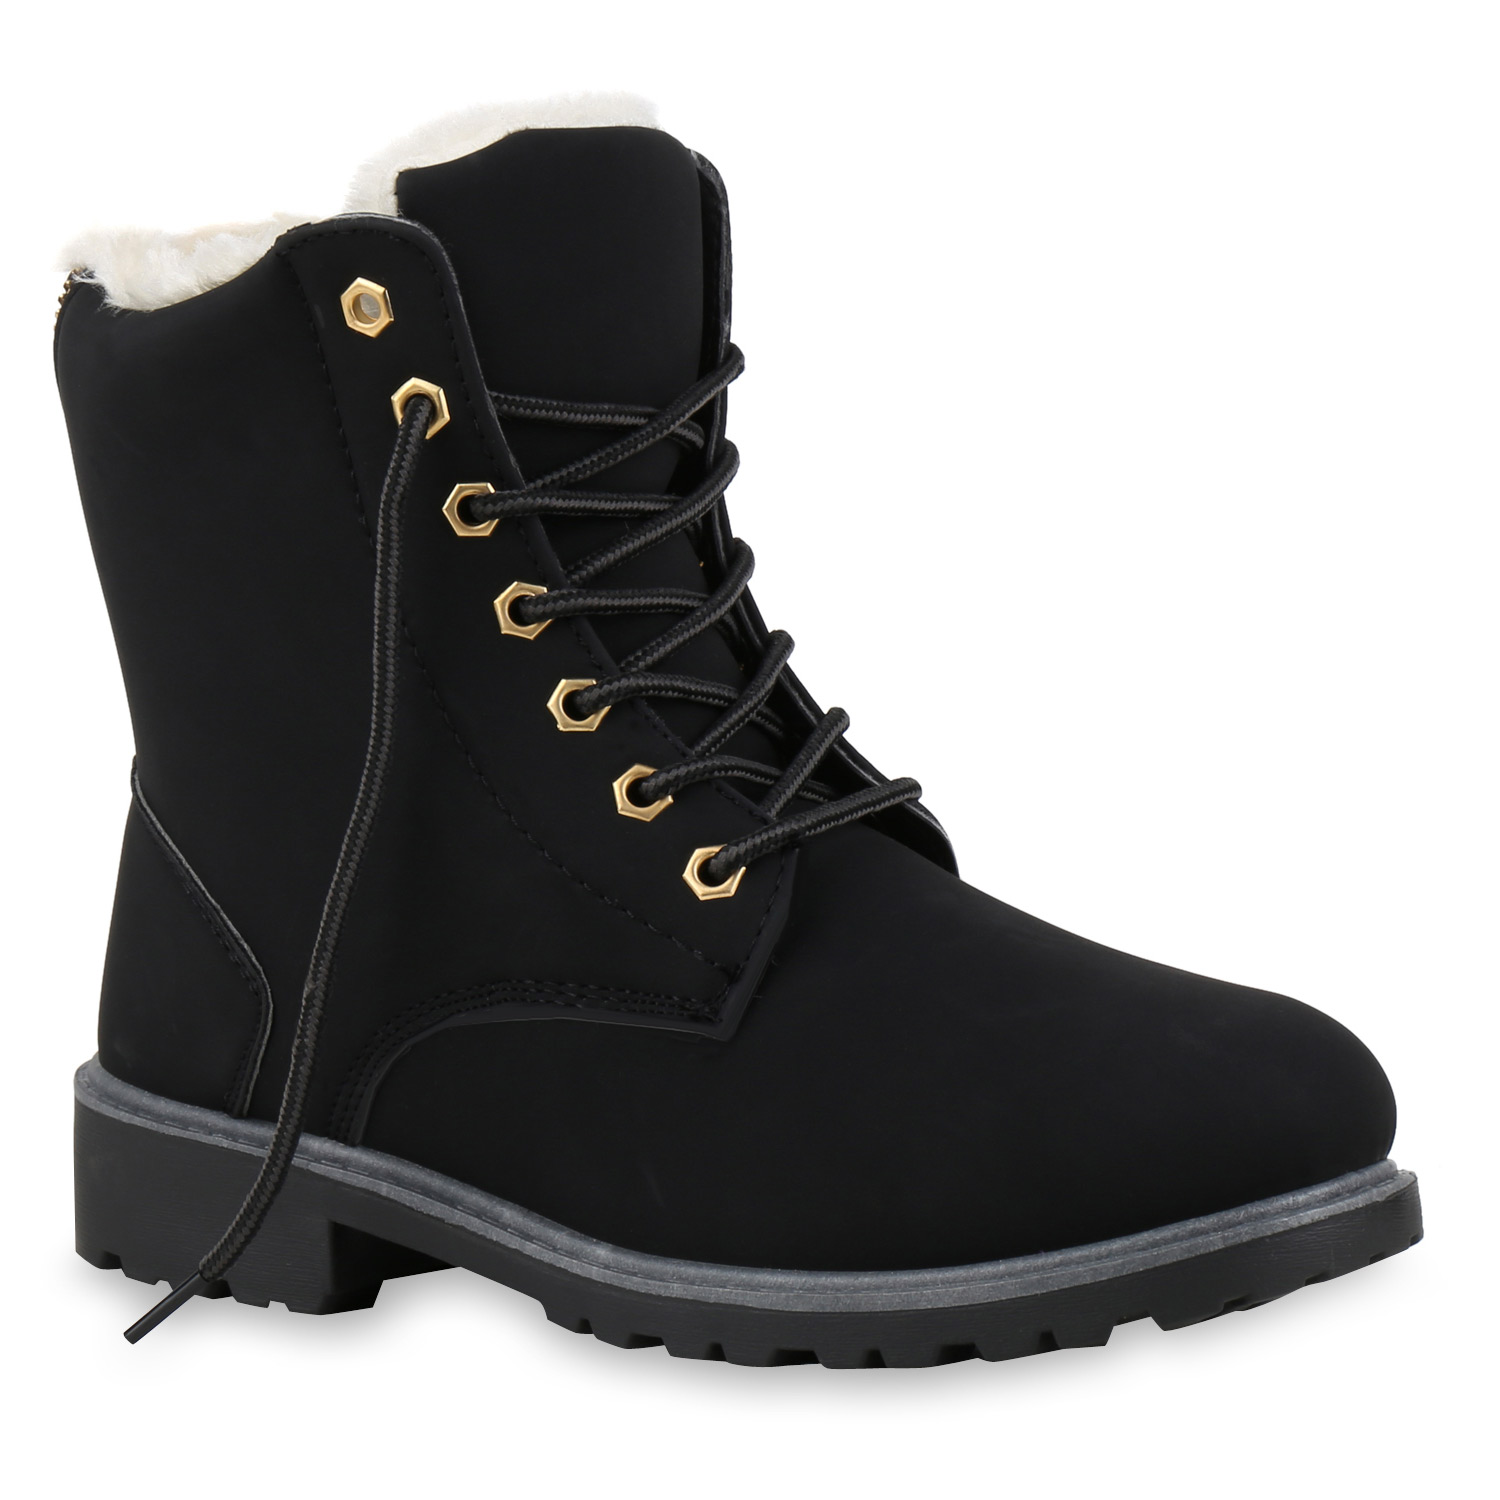 worker boots damen herren outdoor stiefeletten zipper warm gef ttert 812923 ebay. Black Bedroom Furniture Sets. Home Design Ideas